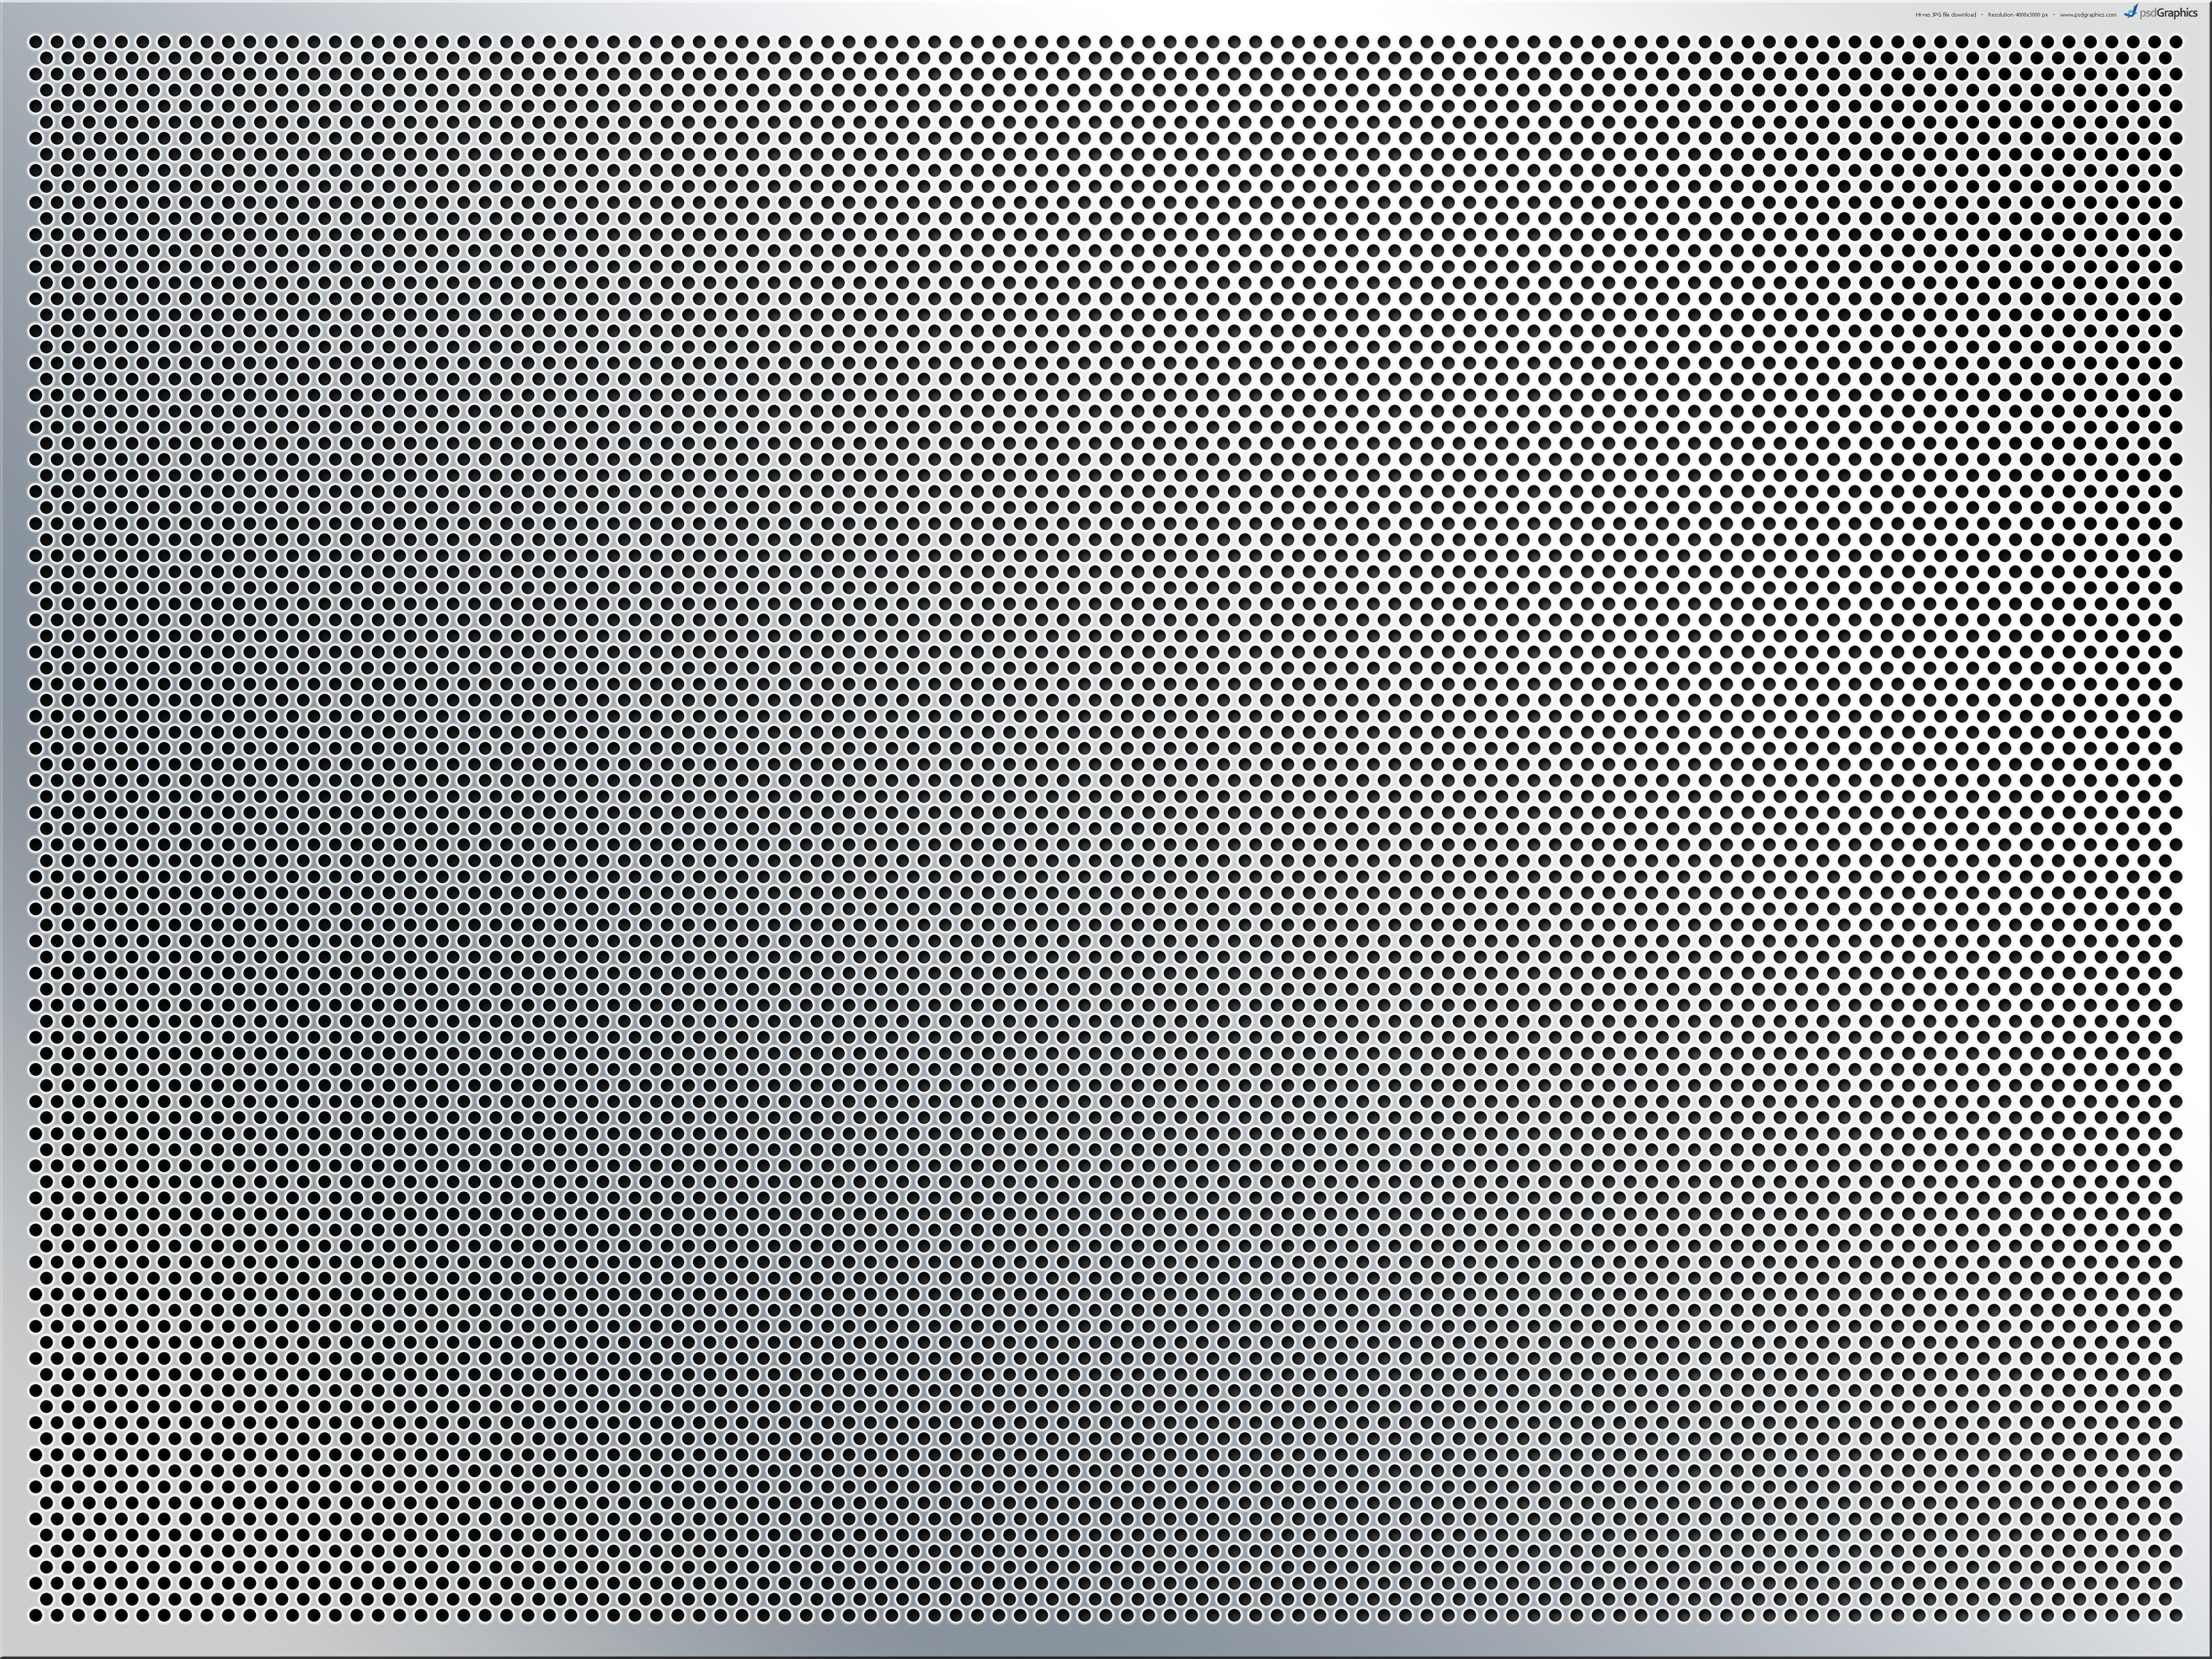 Stainless Steel Mesh Background Psdgraphics Perforated Metal Metal Texture Metal Mesh